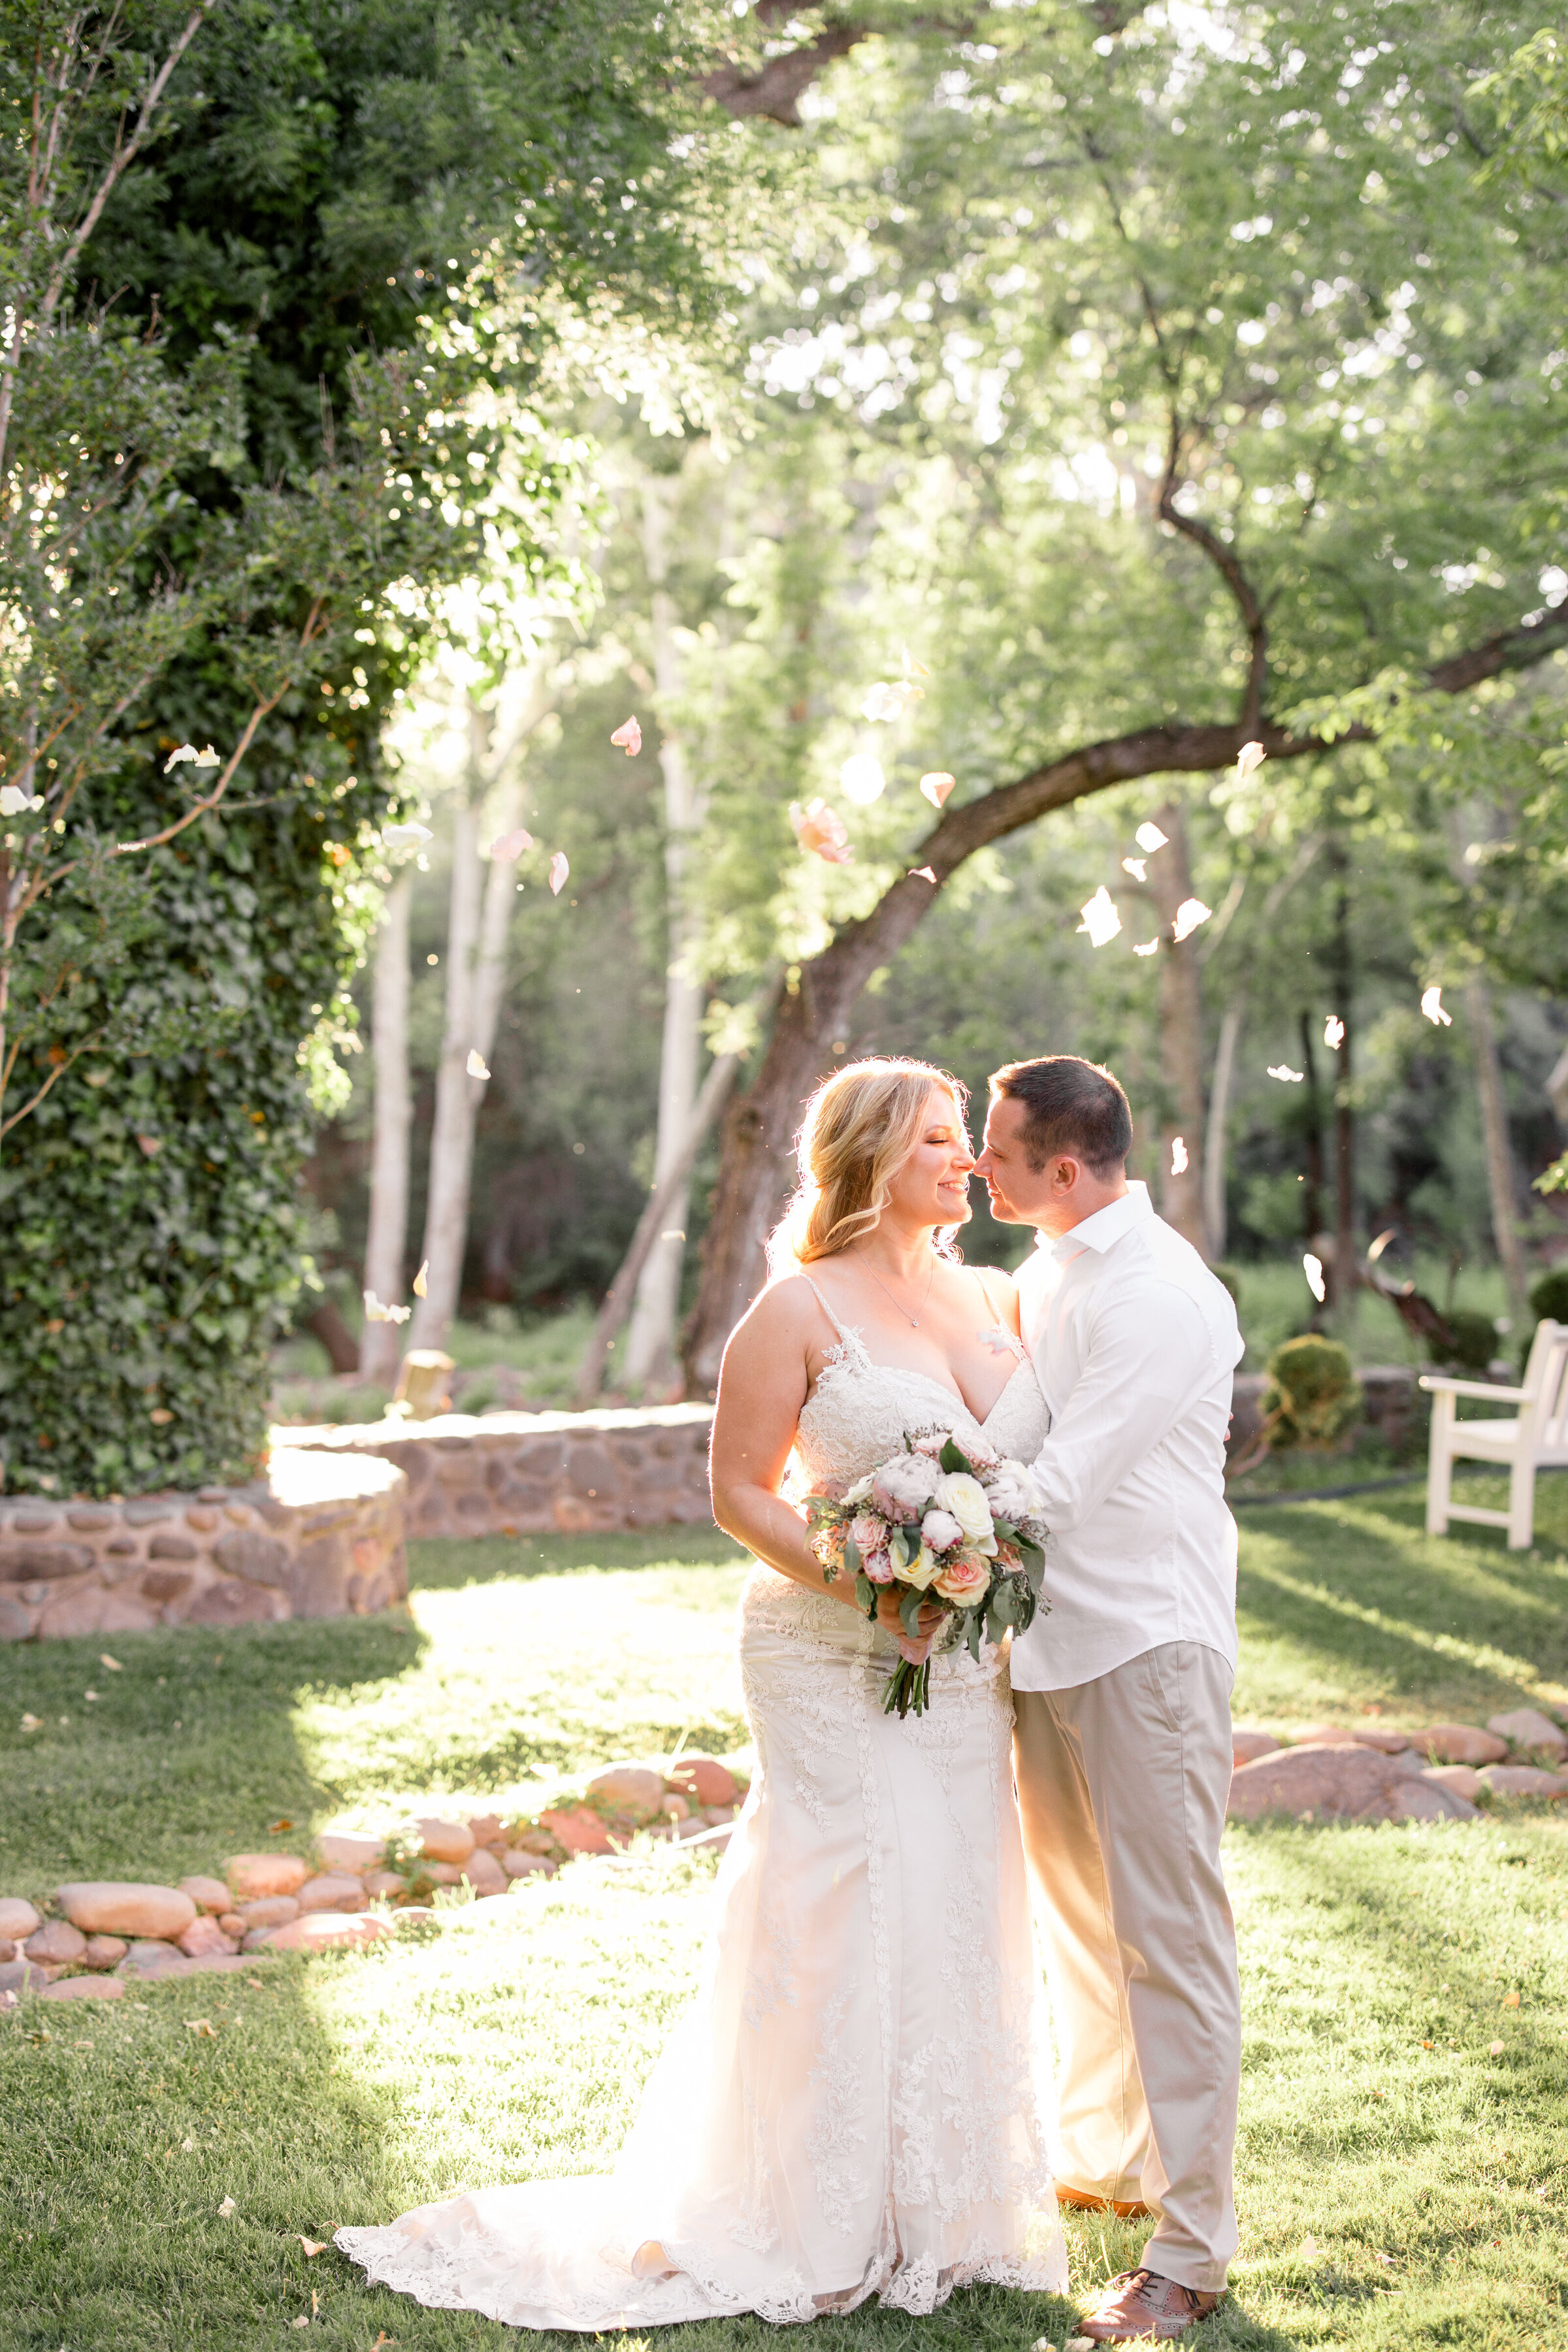 A Bride and Groom elope in Sedona, AZ